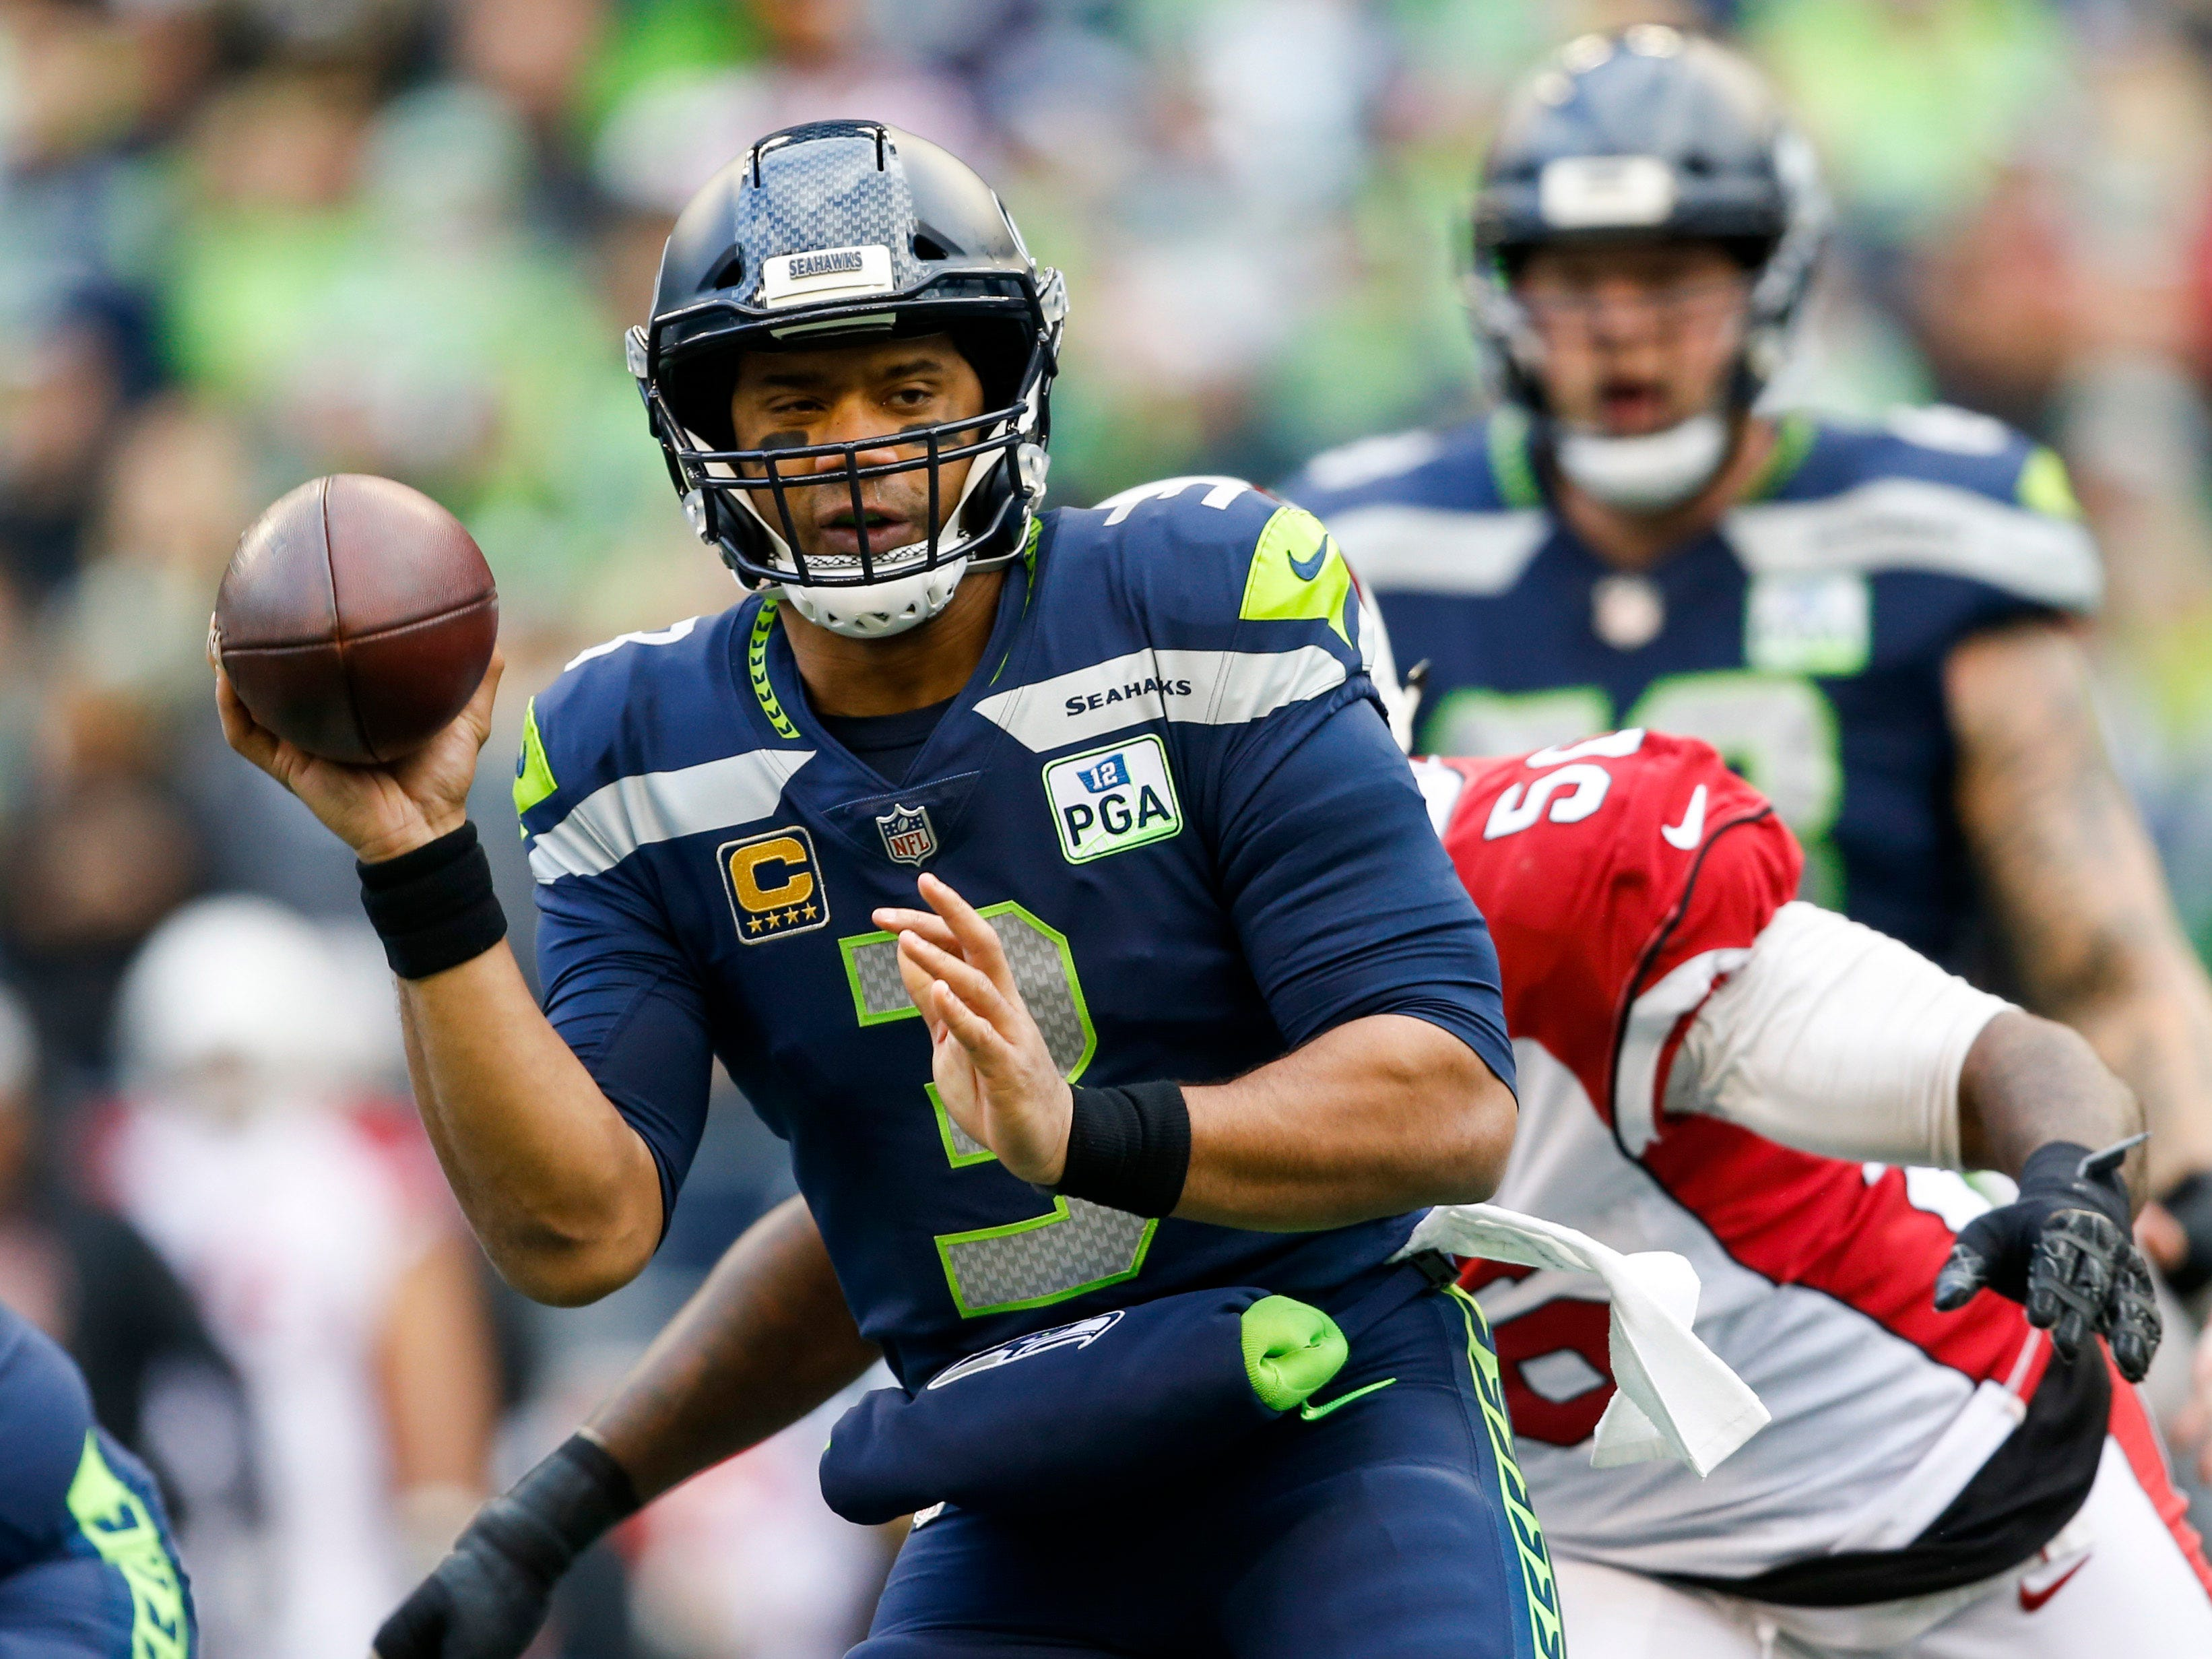 Dec 30, 2018; Seattle, WA, USA; Seattle Seahawks quarterback Russell Wilson (3) throws a lateral pass against the Arizona Cardinals during the first quarter at CenturyLink Field. Mandatory Credit: Joe Nicholson-USA TODAY Sports